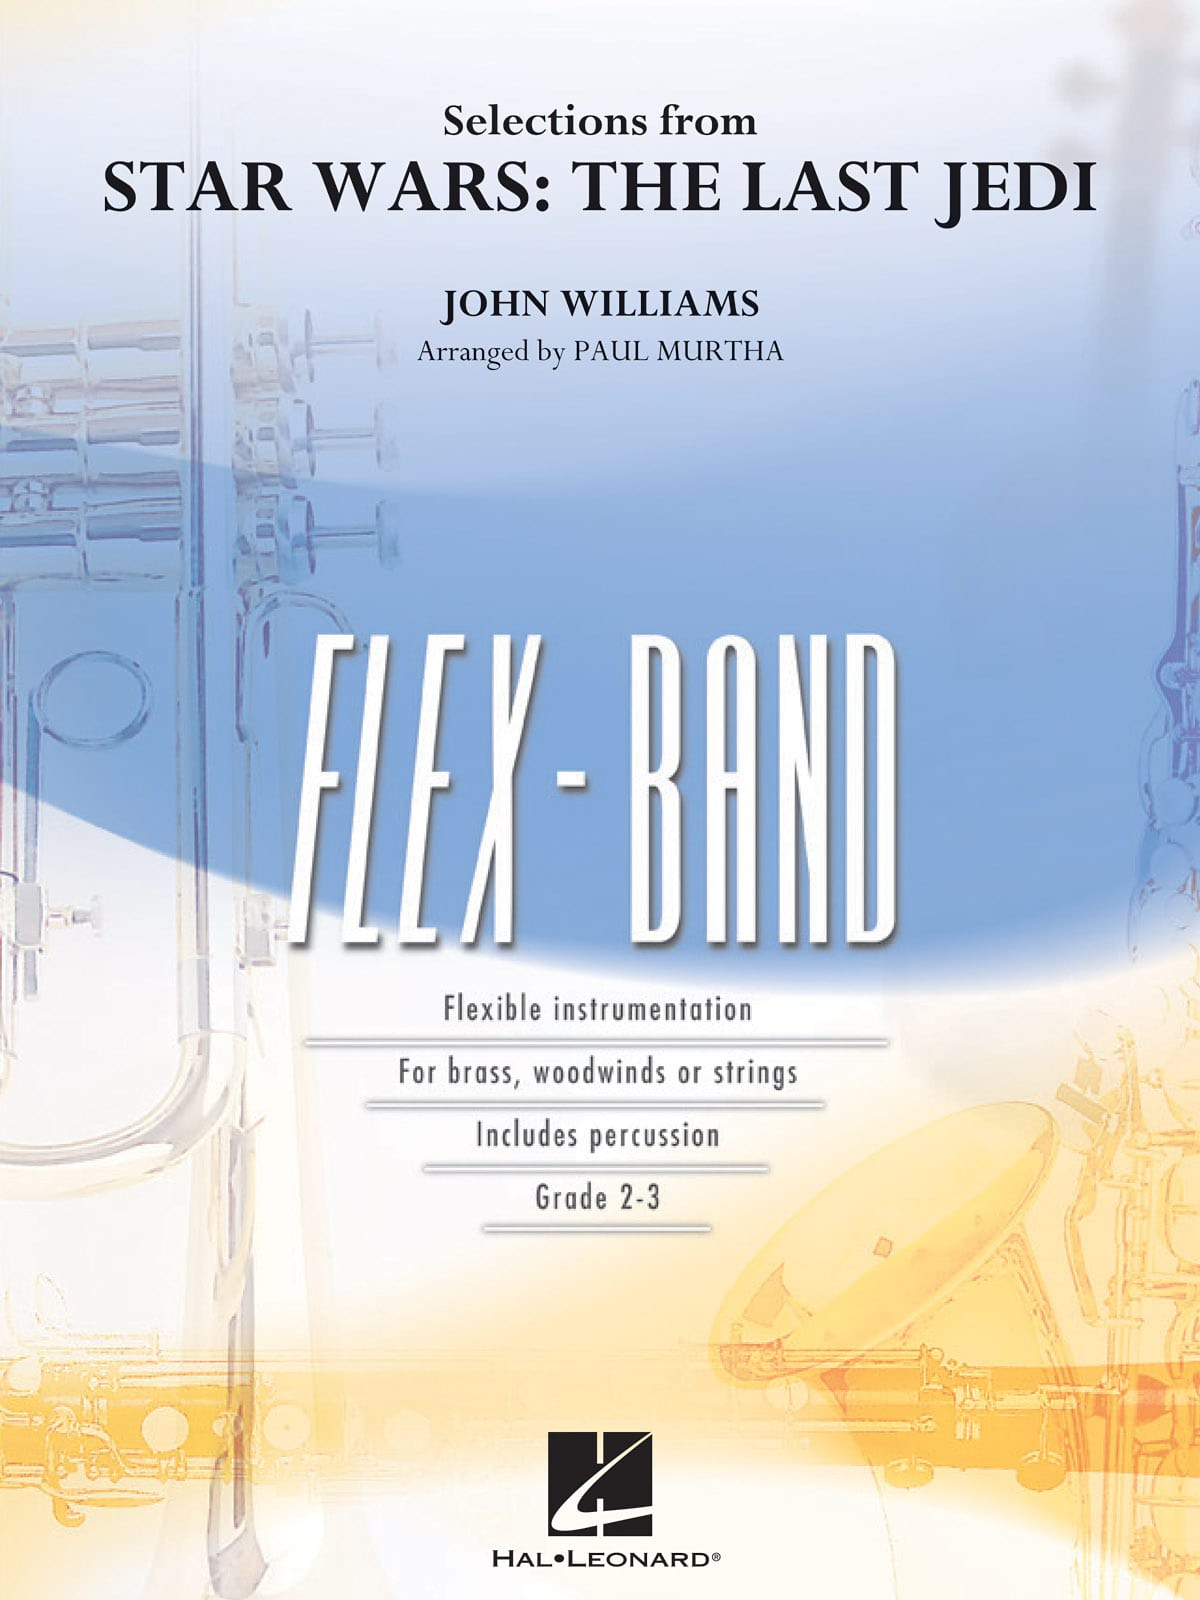 Selections from Star Wars: The Last Jedi - FlexBand - laflutedepan.com